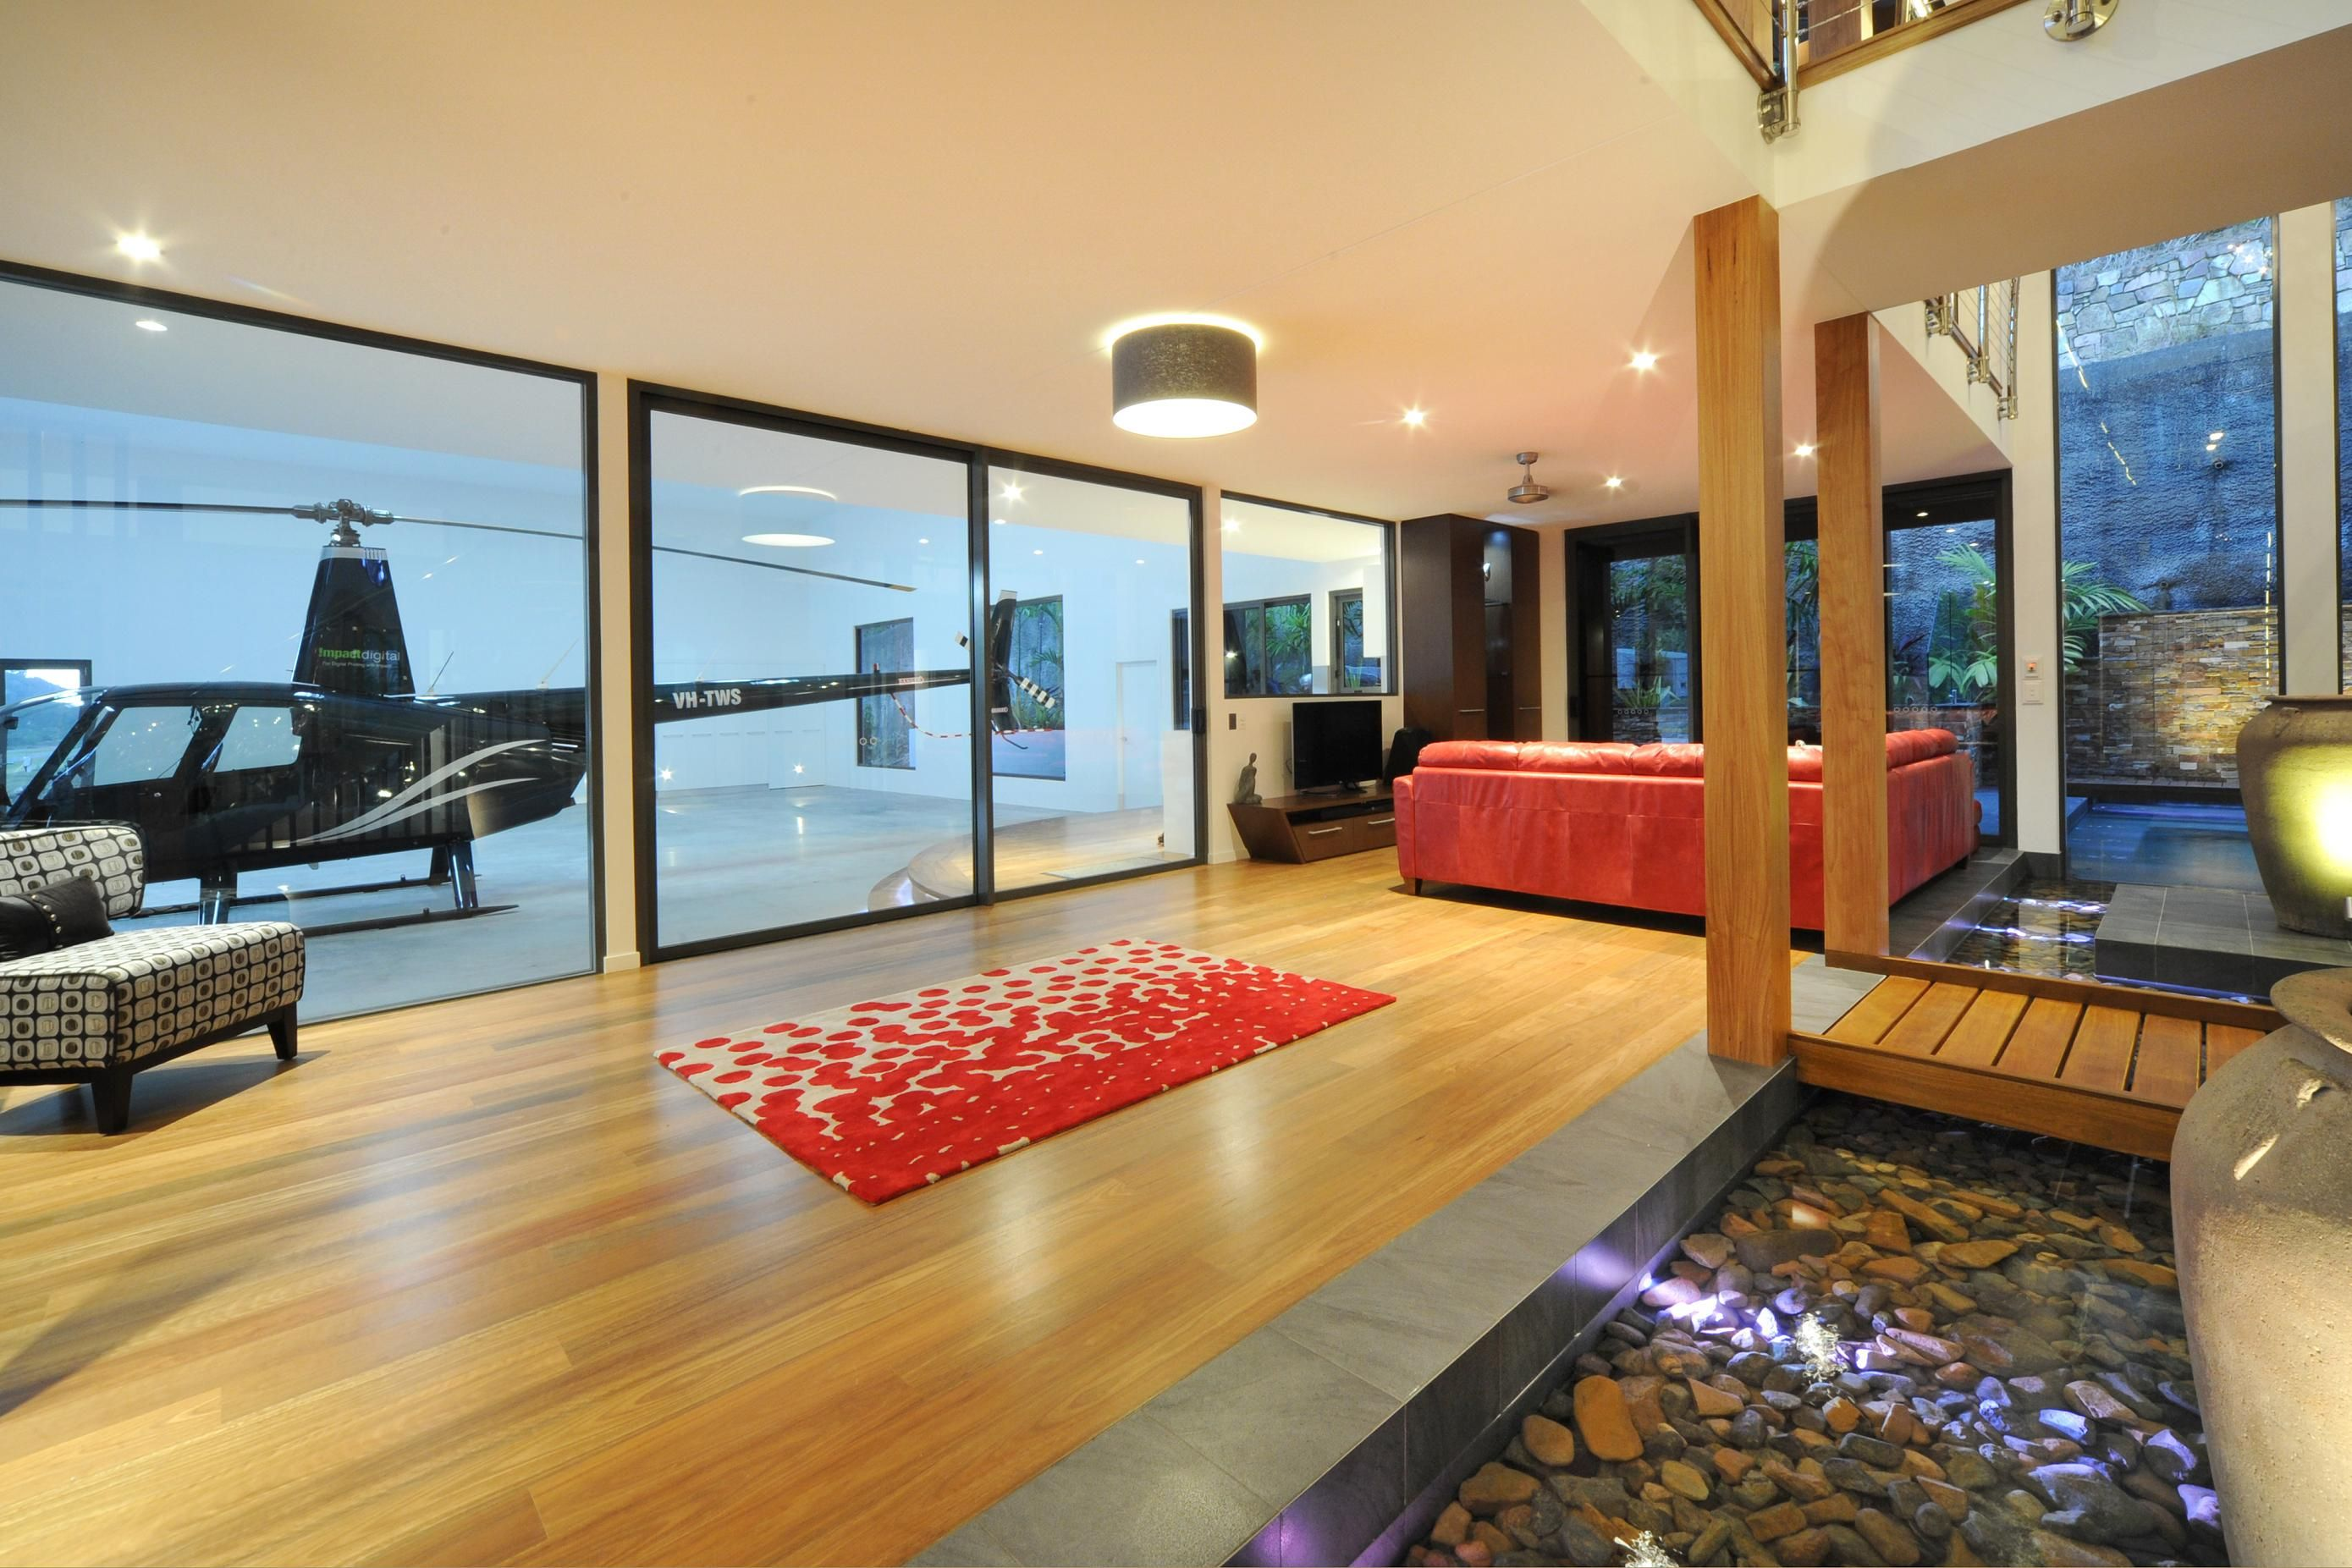 Chris Clout Design Hangar Home In Whitsunday 39 S With